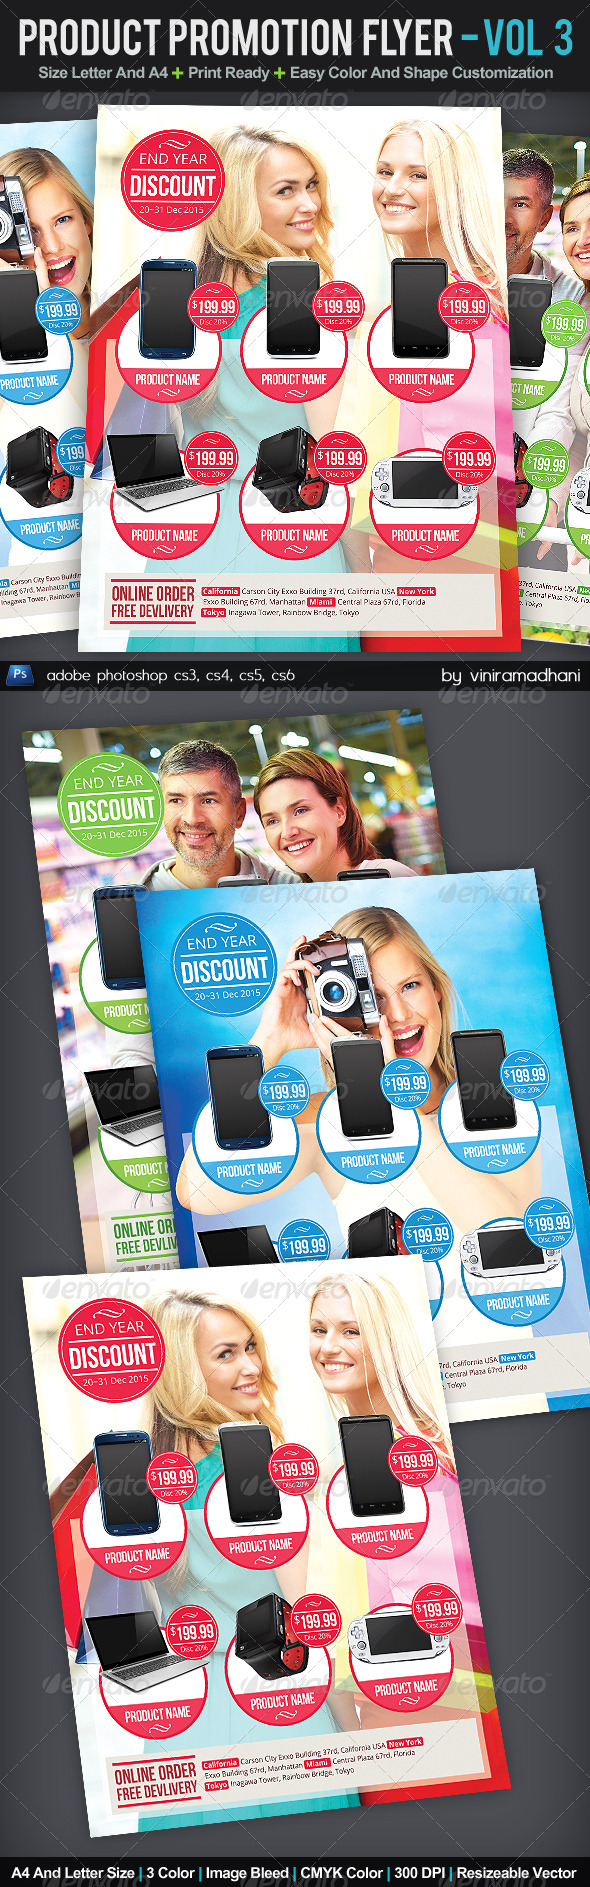 GraphicRiver Product Promotion Flyer Volume 4 6014708